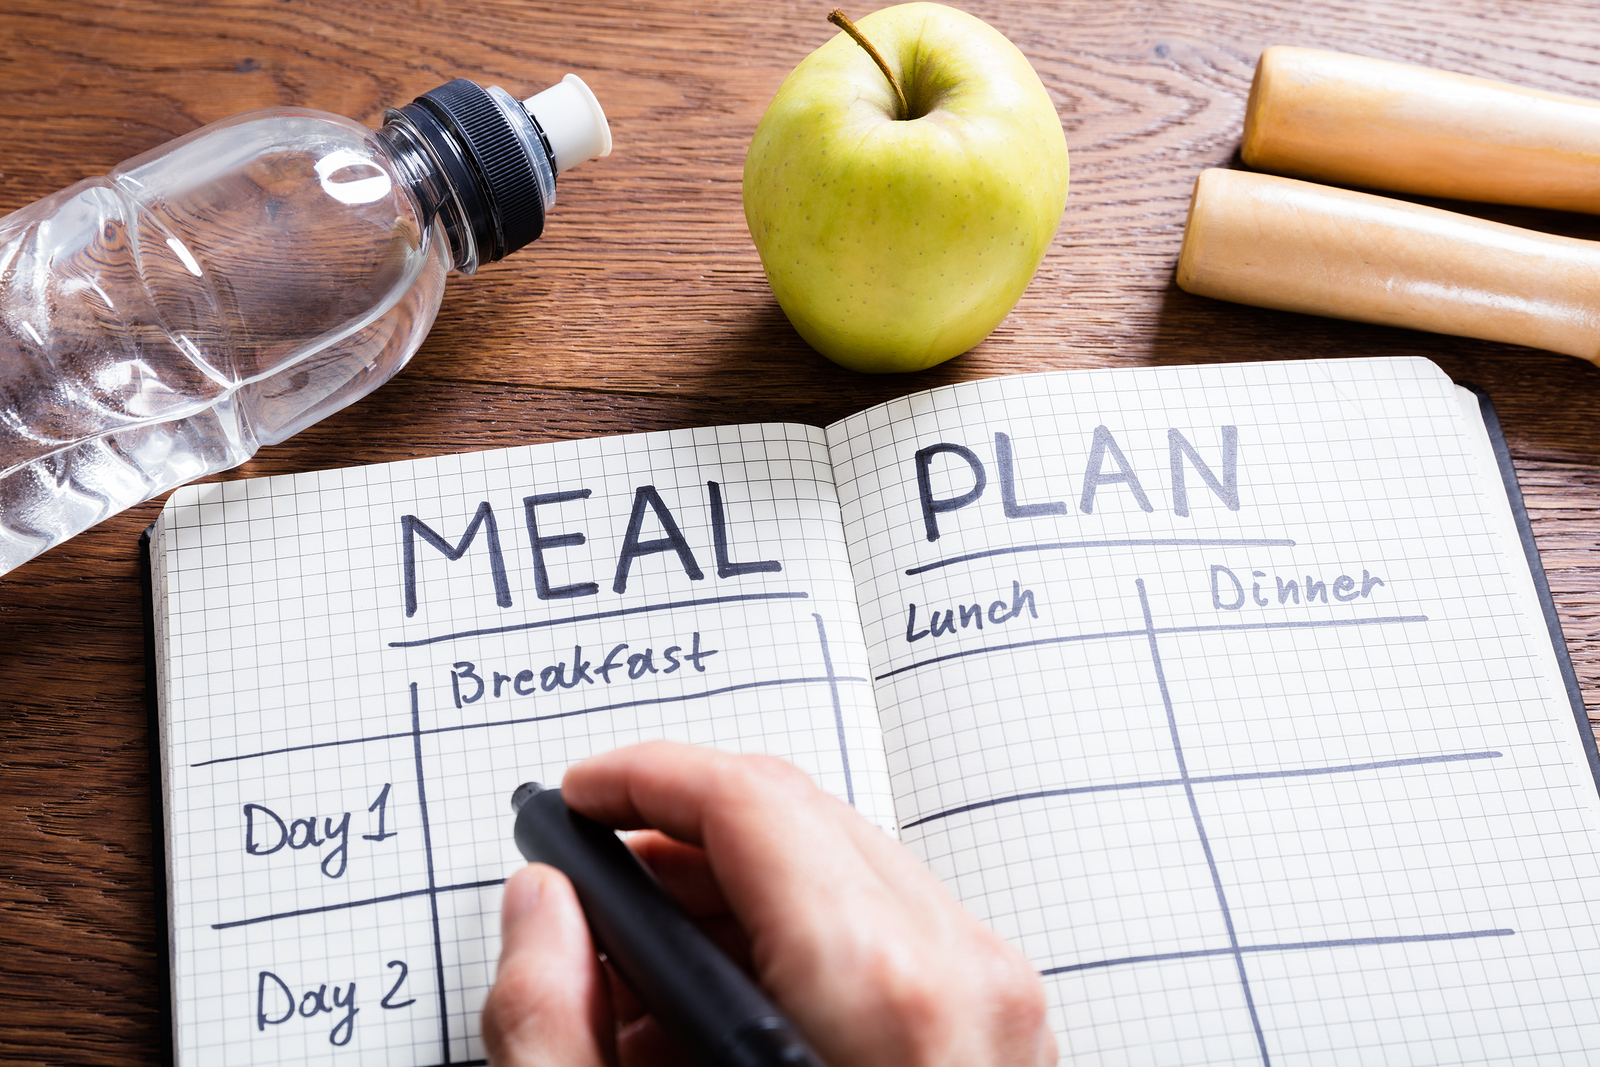 Meal Packages - Simple and appetizing meals, built just for you! Take the work out of meal planning. Let our chefs curate meals for you from your personalized food recommendations.